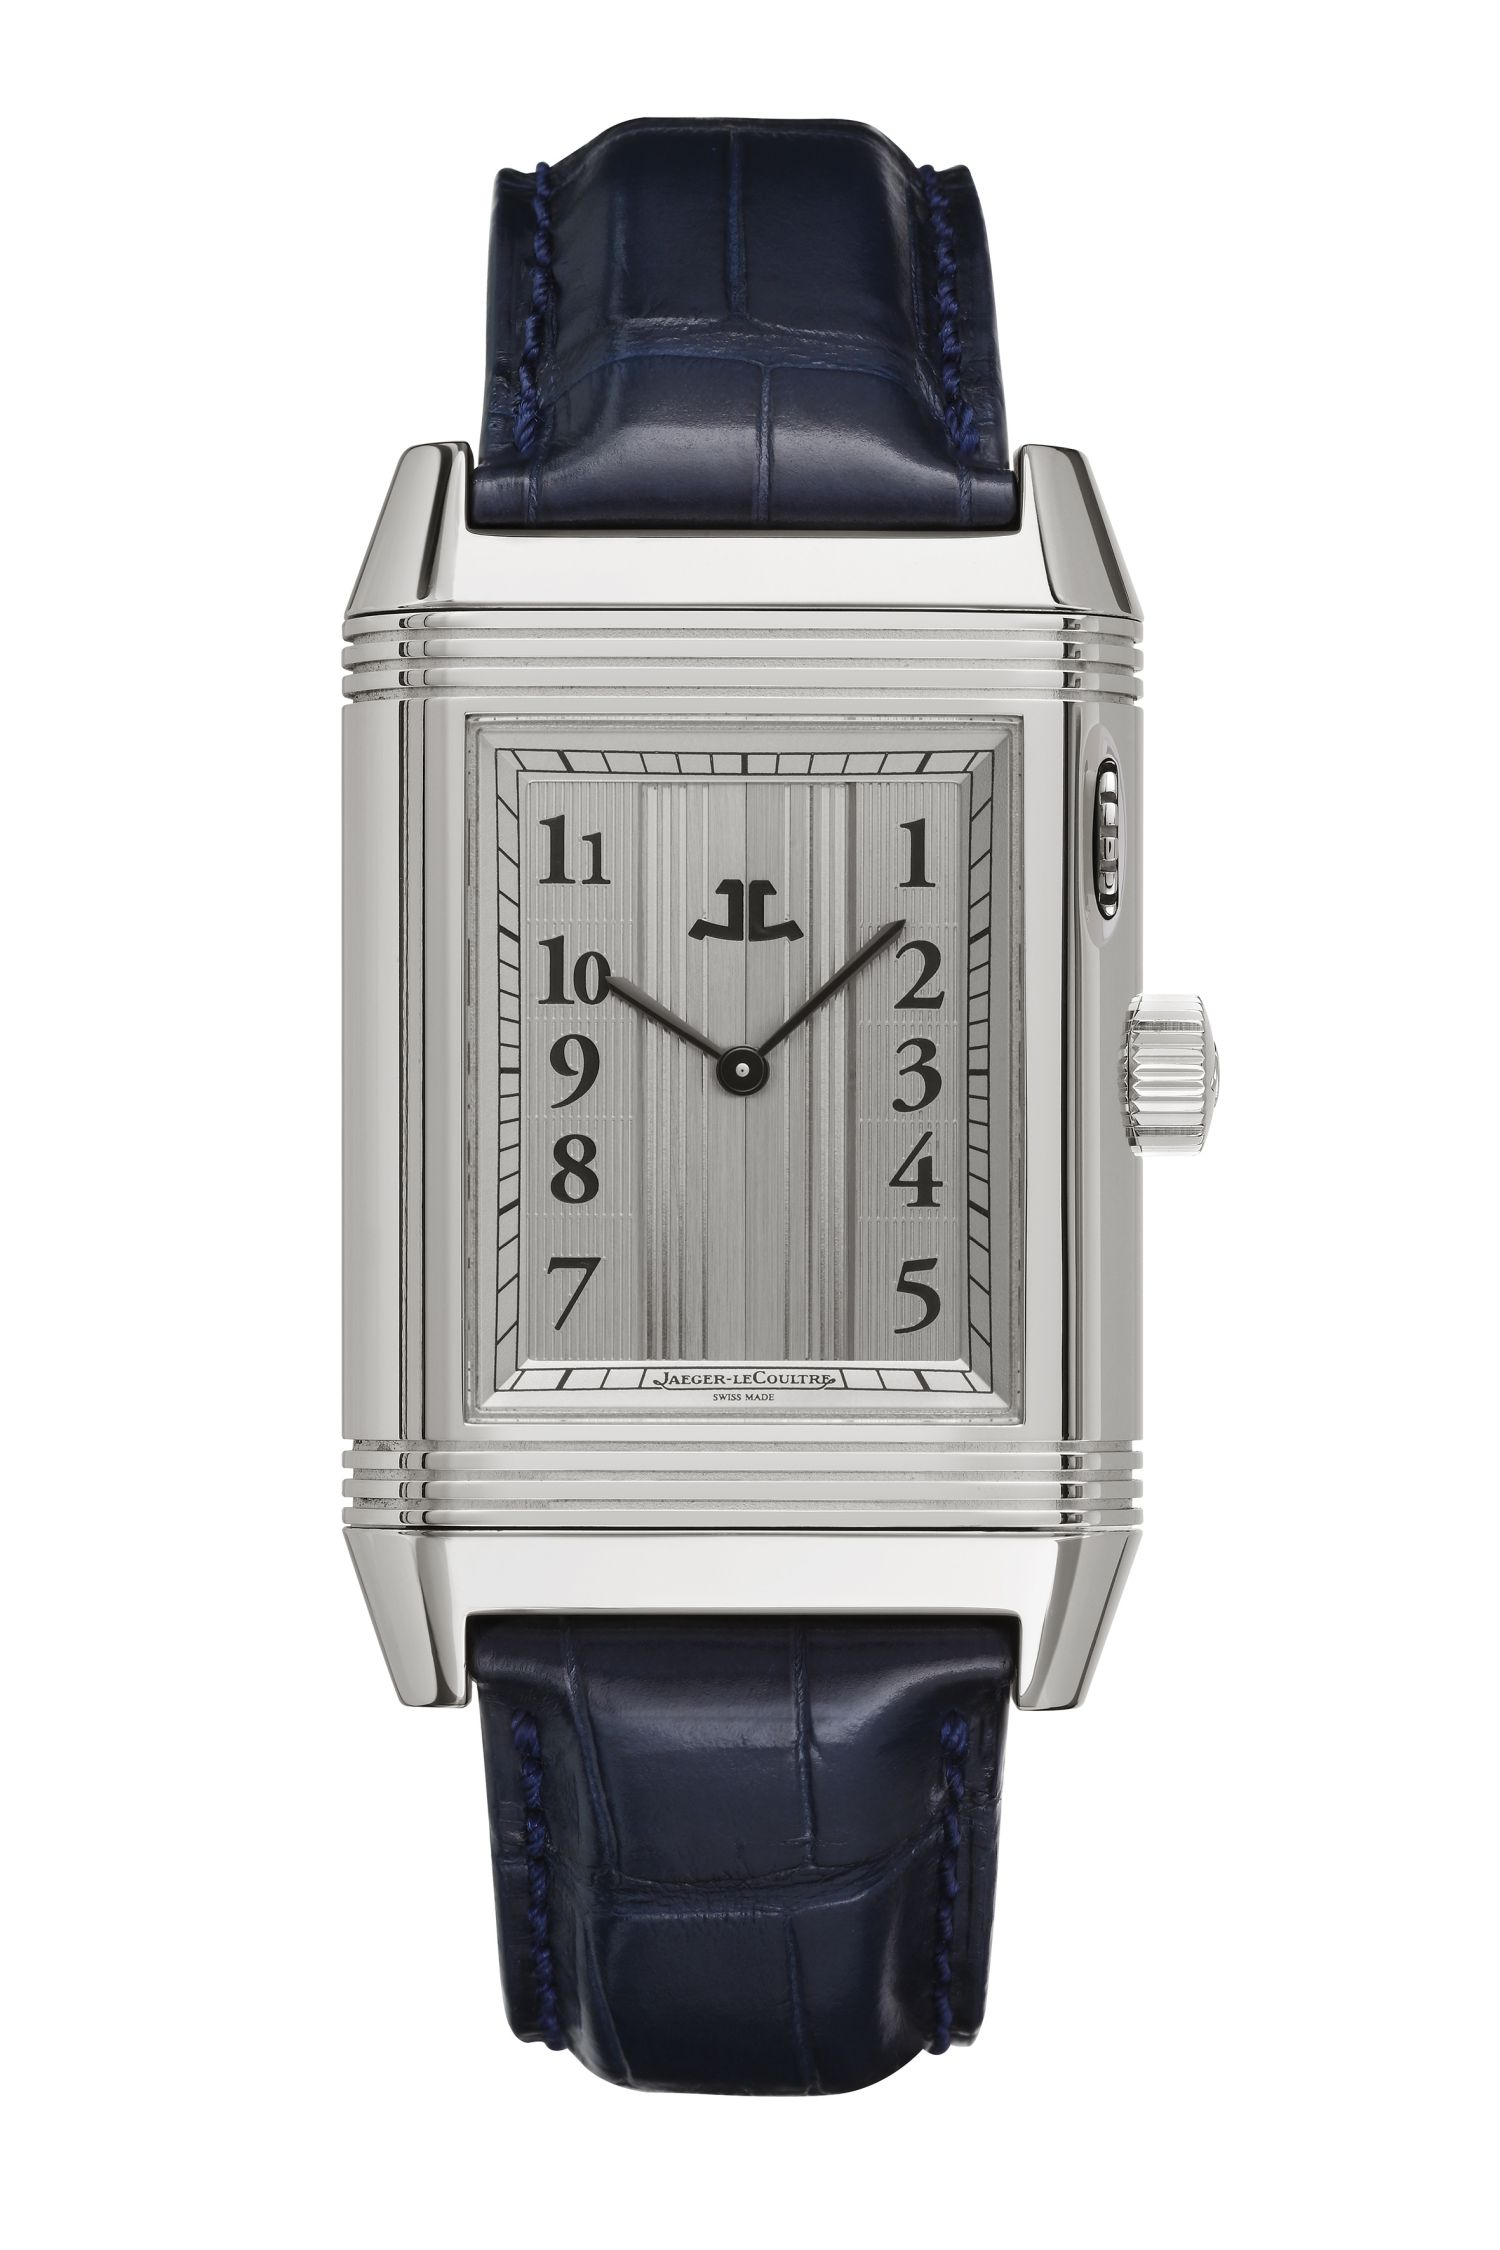 Jaeger-LeCoultre-Reverso-Tribute-to-Vincent-van-Gogh-2.jpg